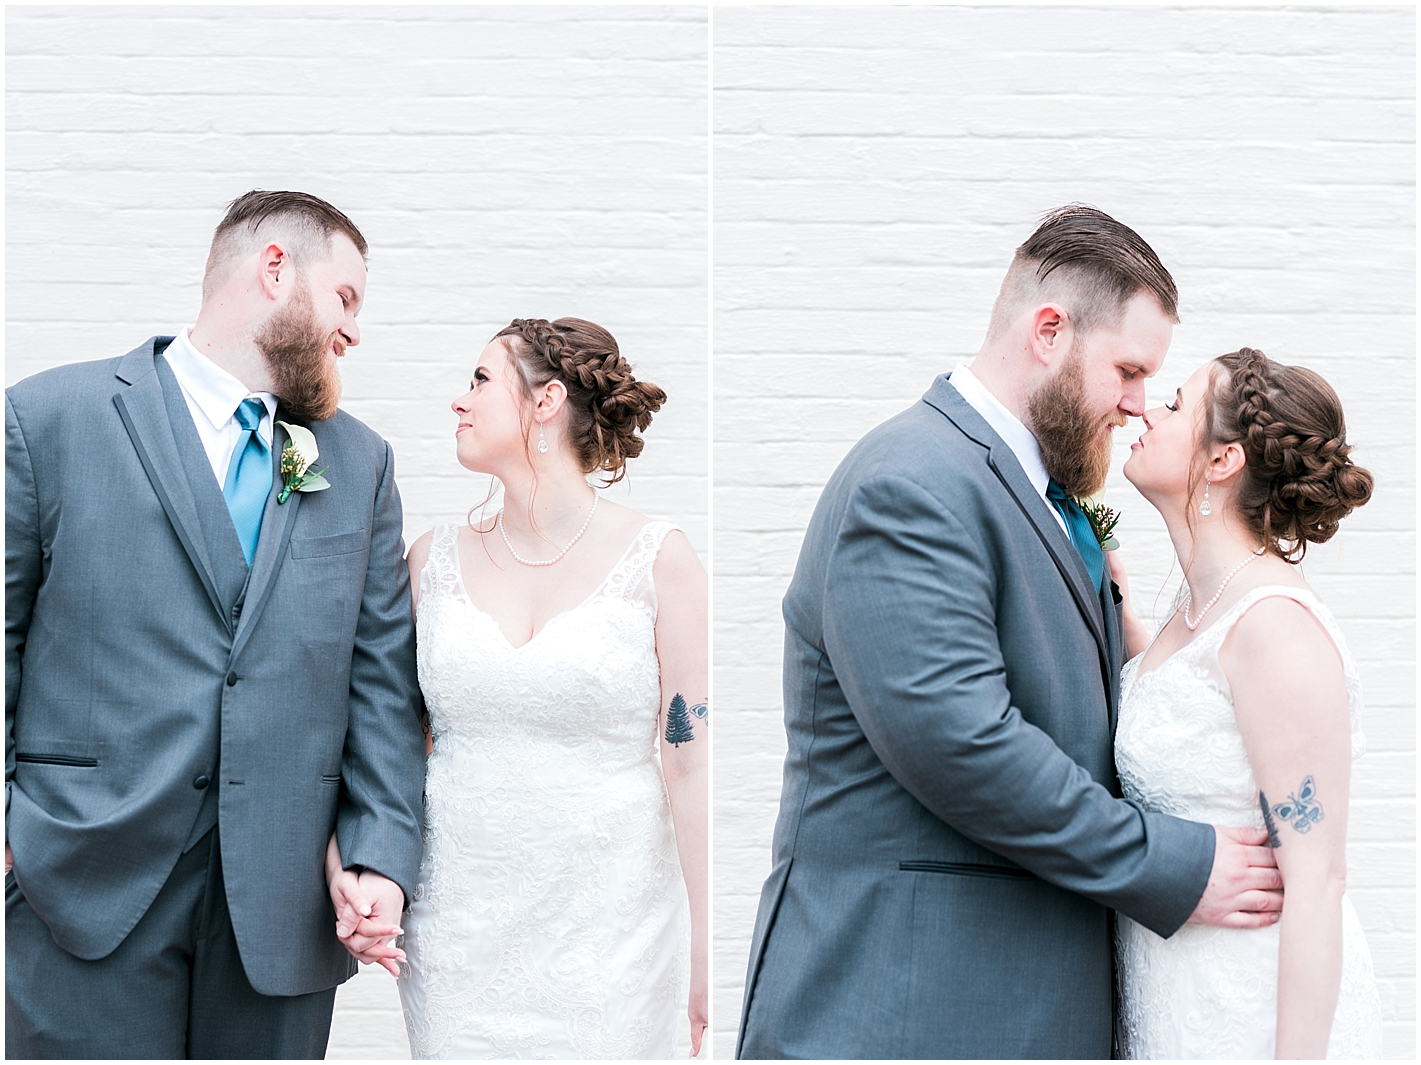 Light and natural wedding Photos By Alyssa Parker Photography